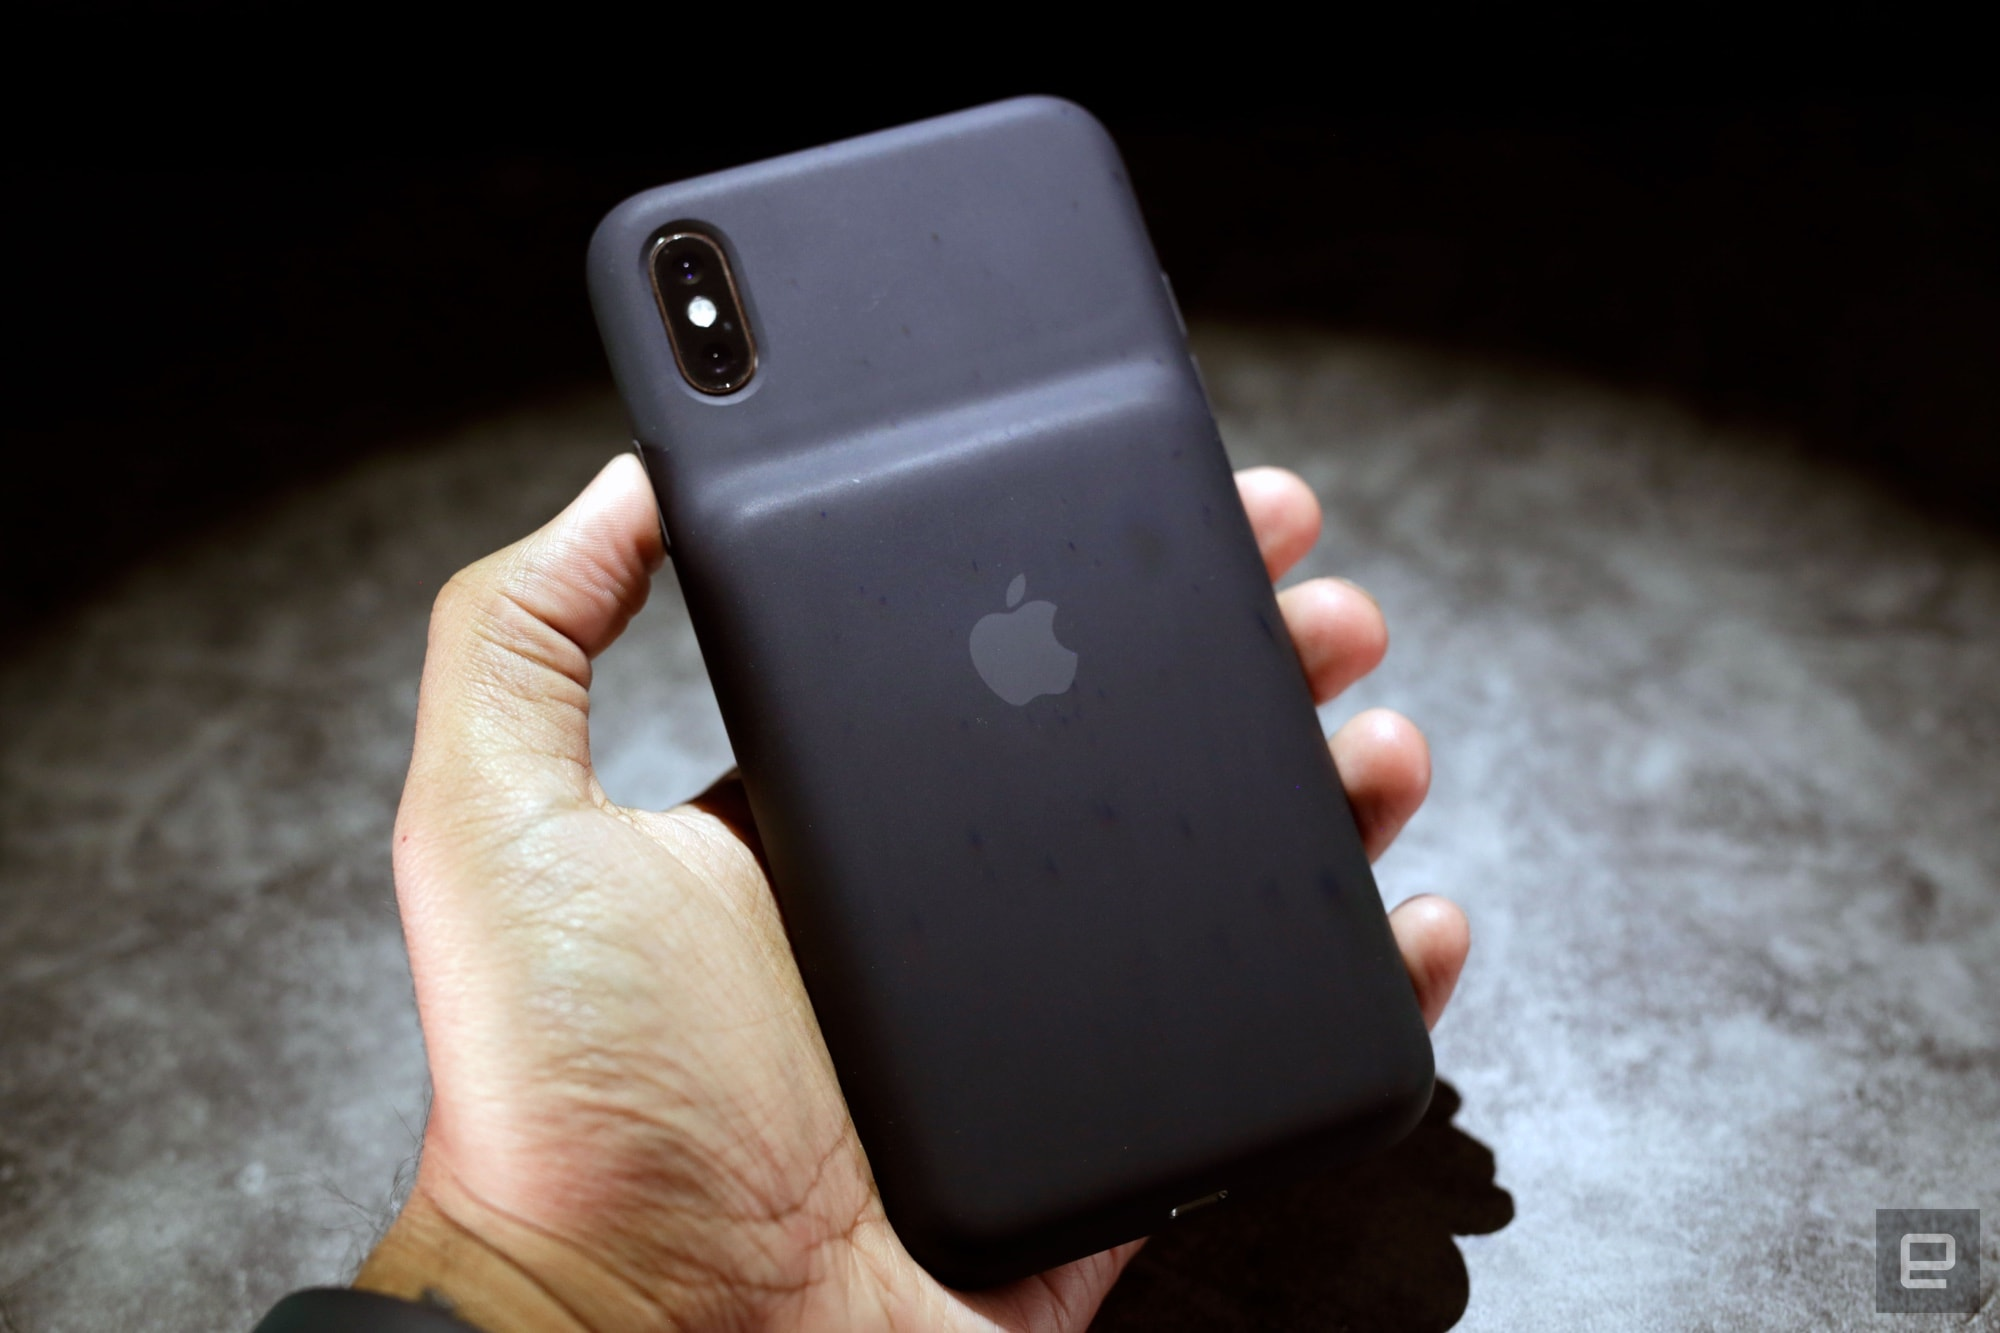 competitive price 9b4f4 8d22d Apple Smart Battery Case review (2019): A basic, effective iPhone add-on